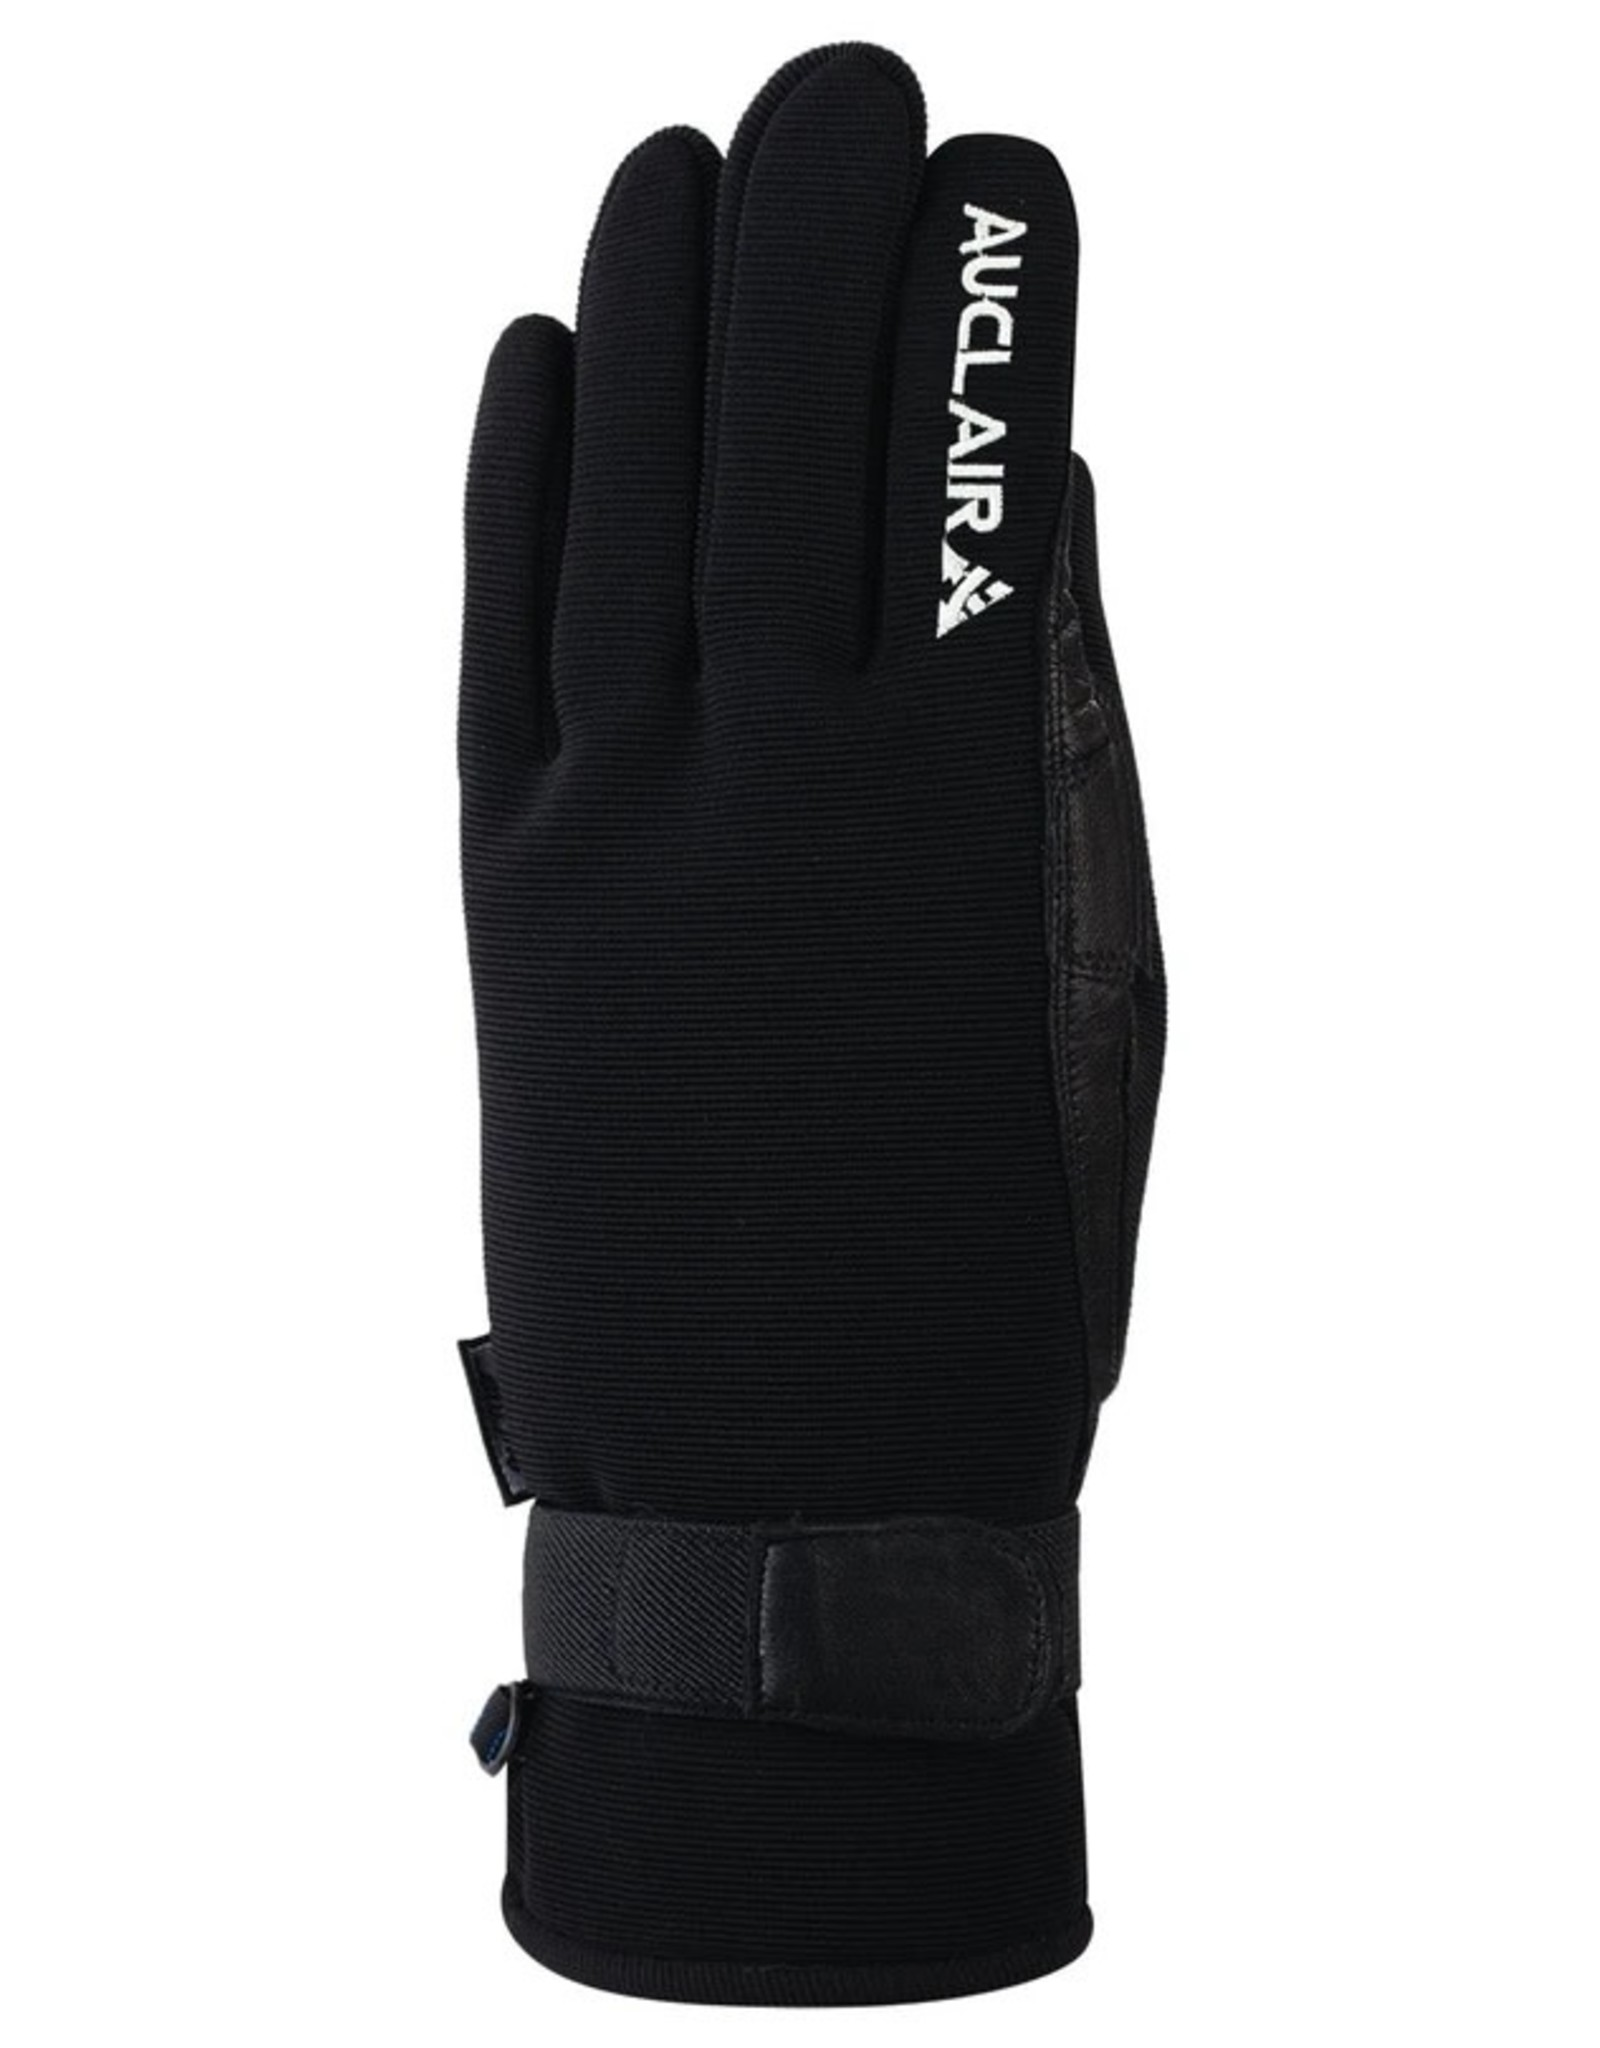 Auclair '21 Auclair Men's Skater Glove